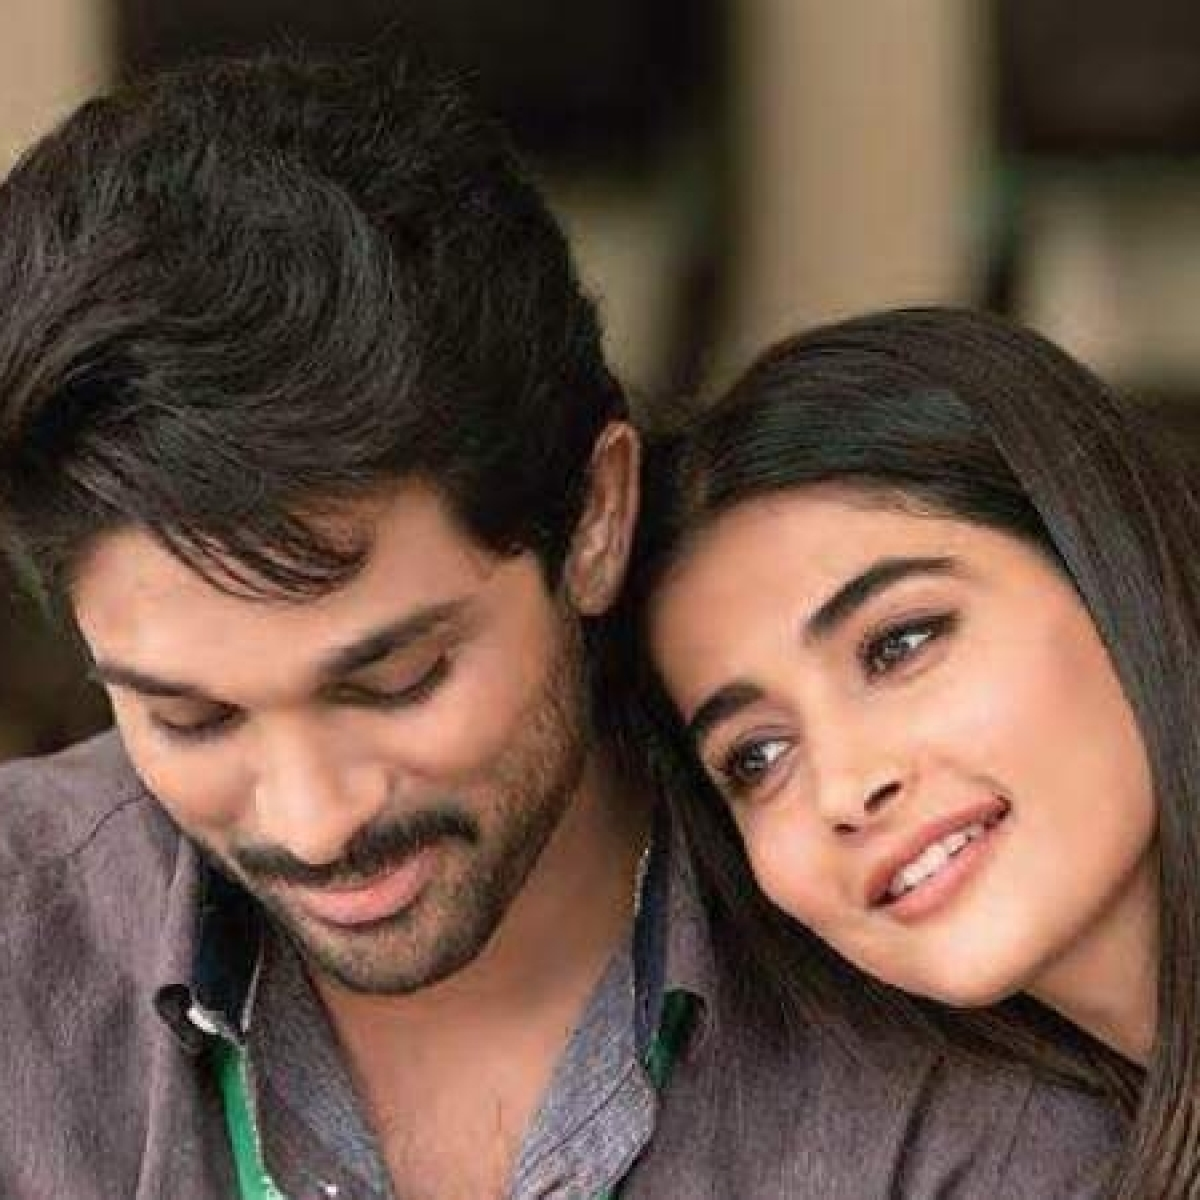 'Bantu seems to be giving Amulya company': Pooja Hegde's reaction to Allu Arjun testing positive for COVID-19